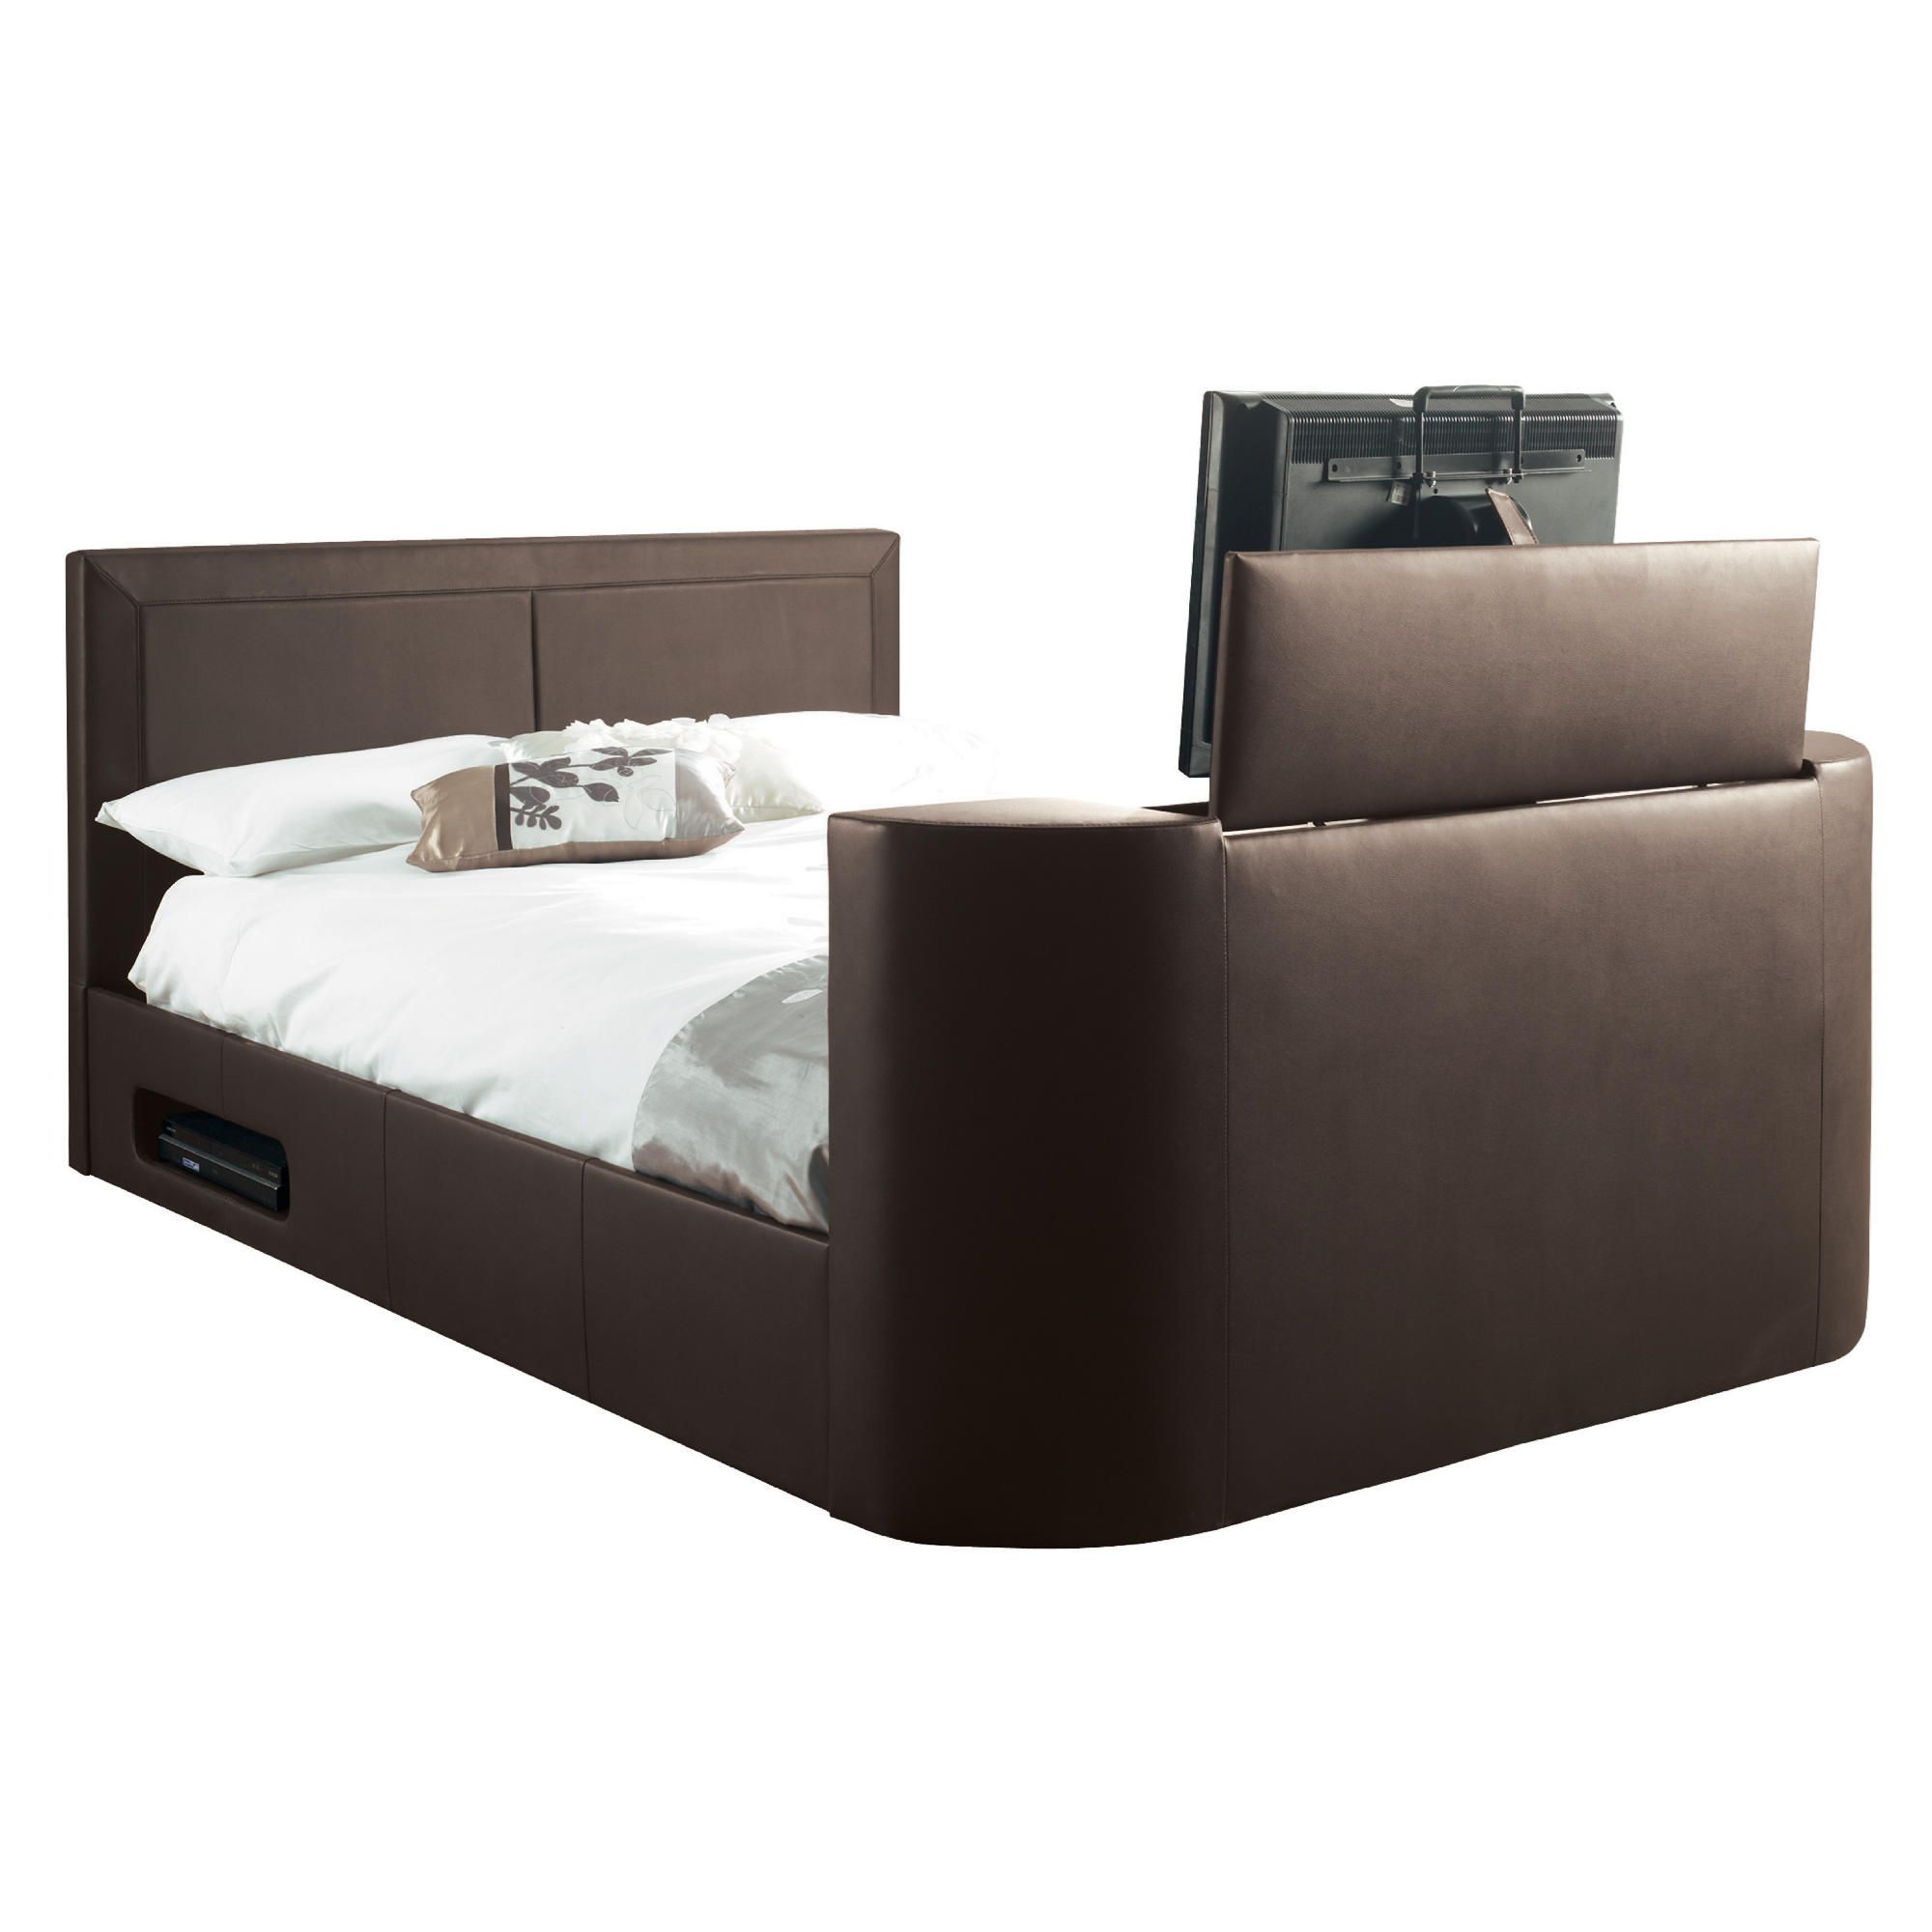 Charlotte King Gas Lift Tv Bed Frame, Brown at Tescos Direct